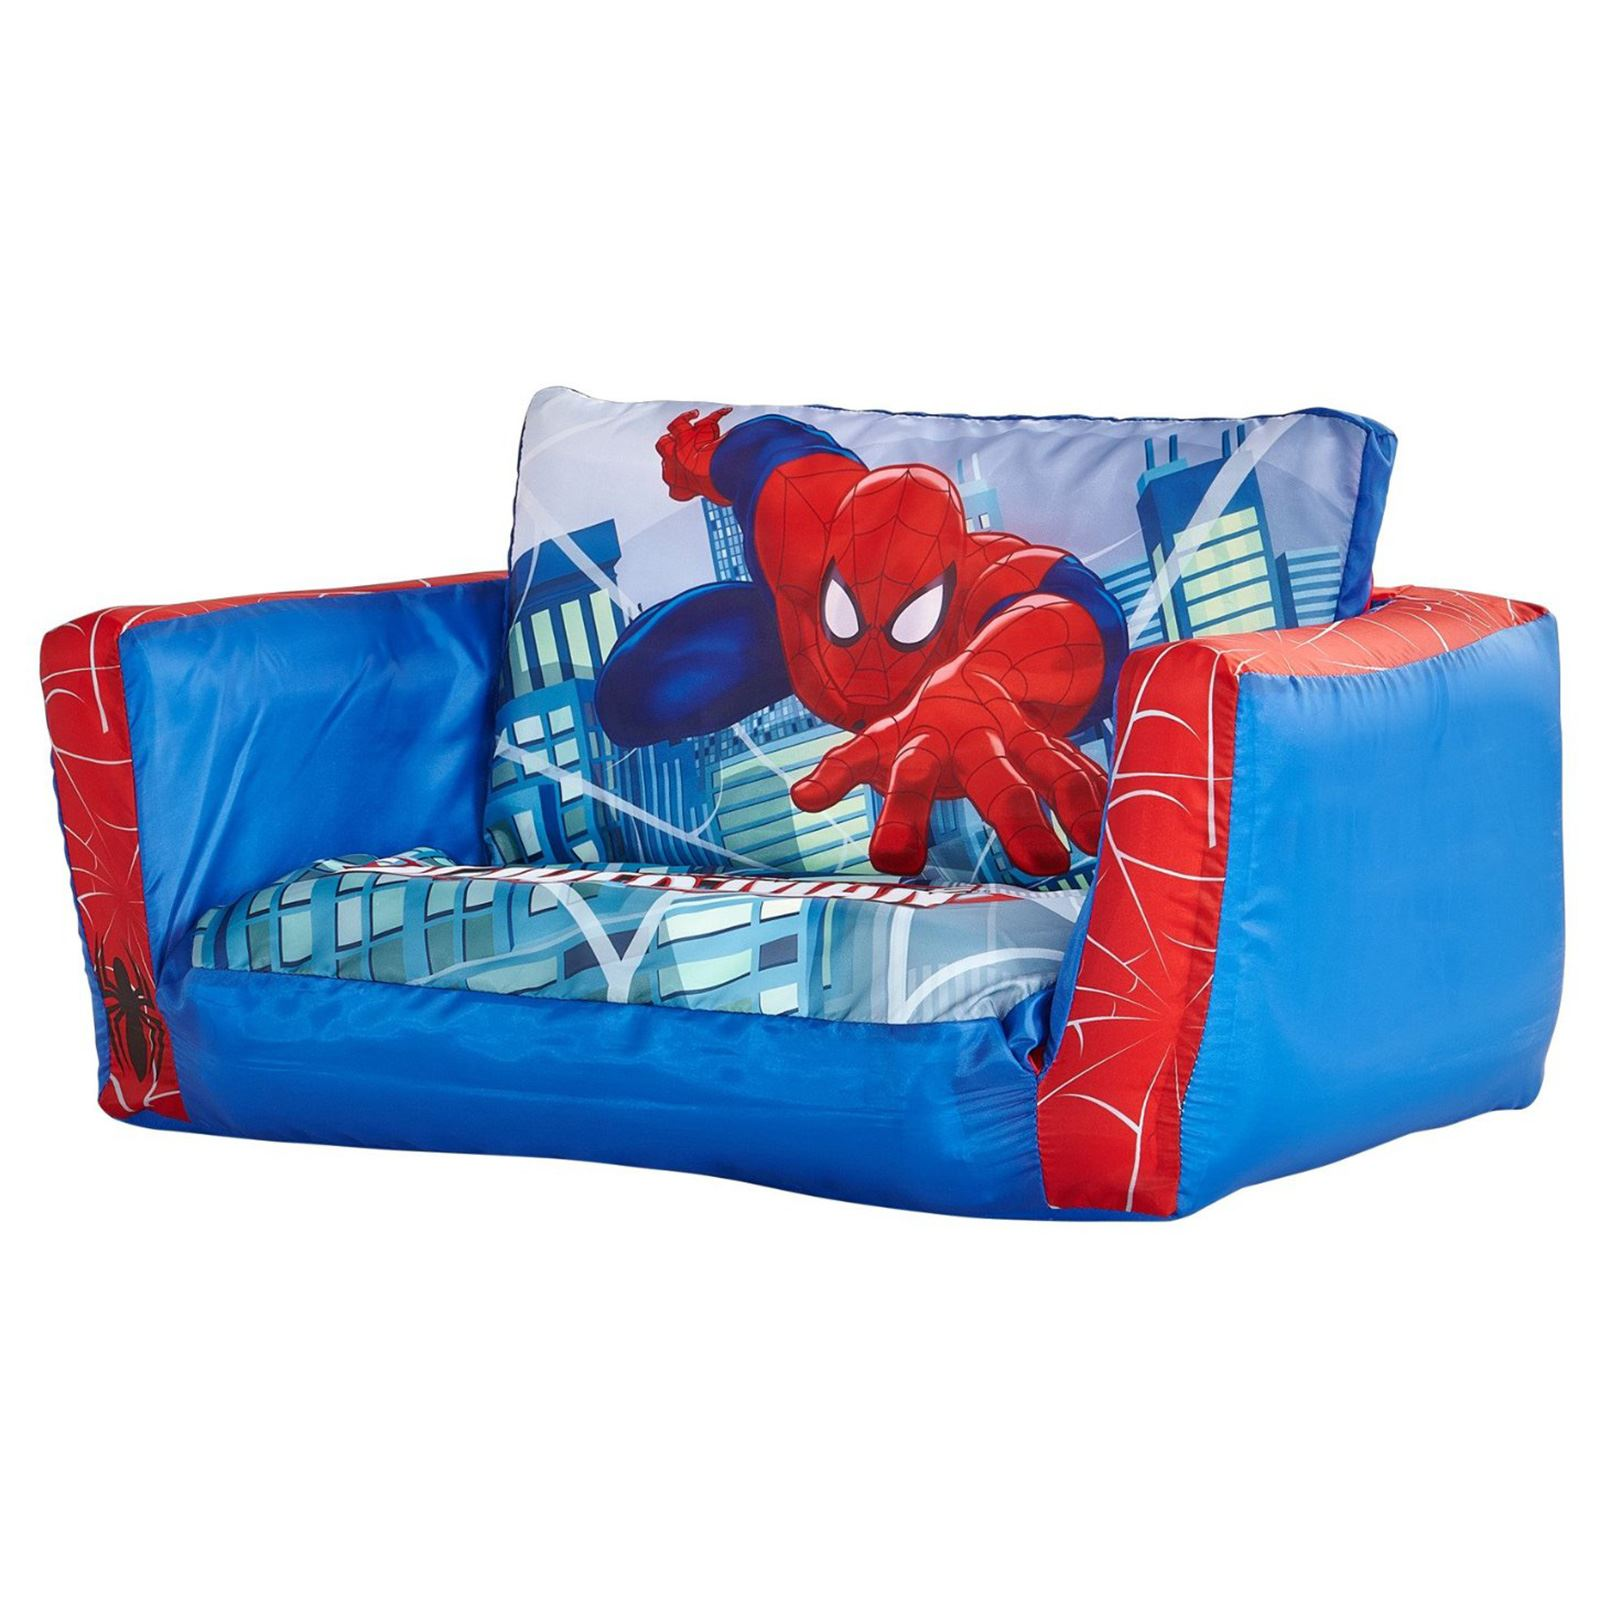 Official Spiderman Flip Out Sofa Childrens Lounger Bed New